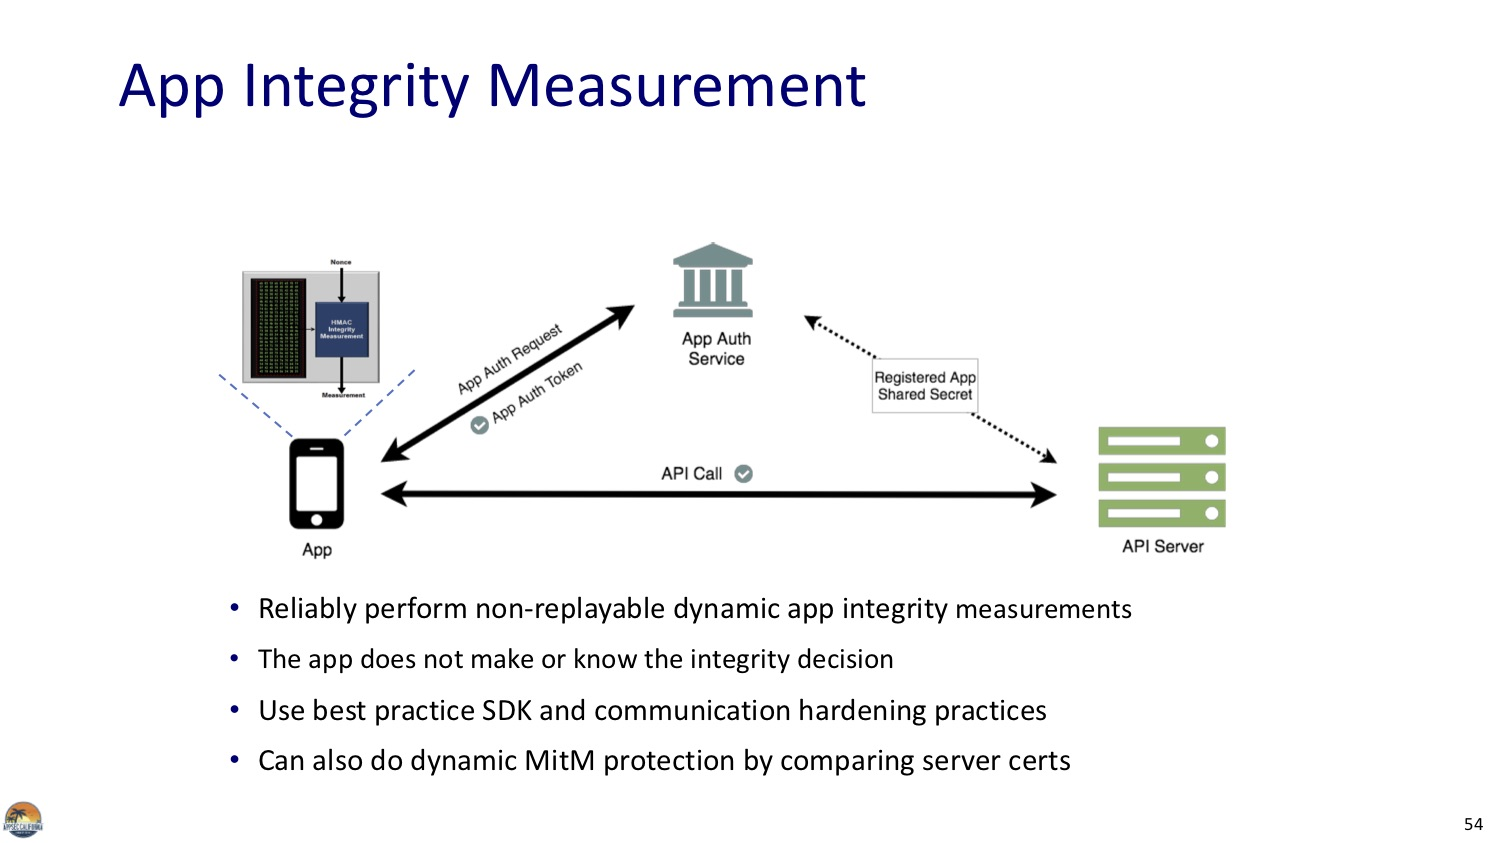 App Integrity Measurement